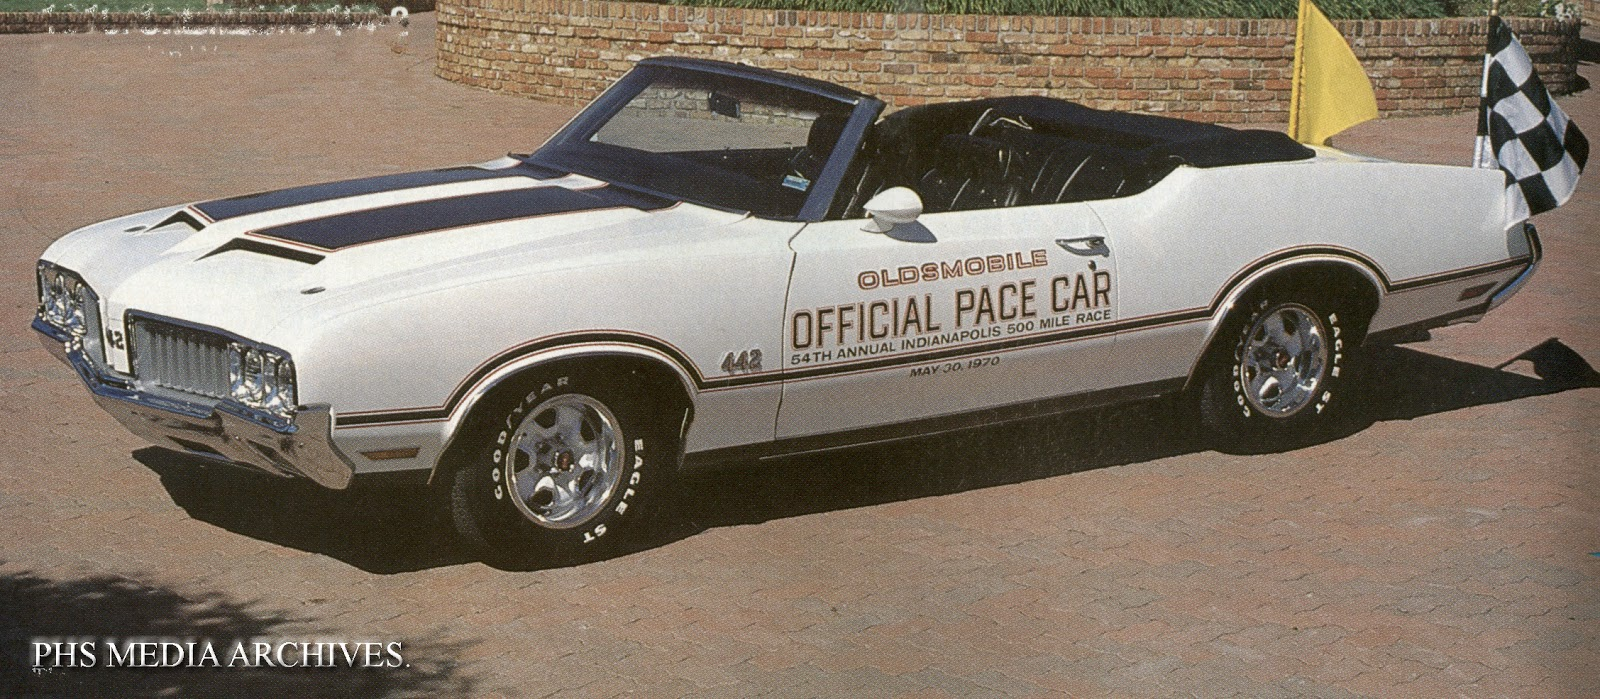 Those of you rebuilding an olds cutlass or 442 rear end will notice that the posi carrier case is slightly different from the chevrolet posi carrier case